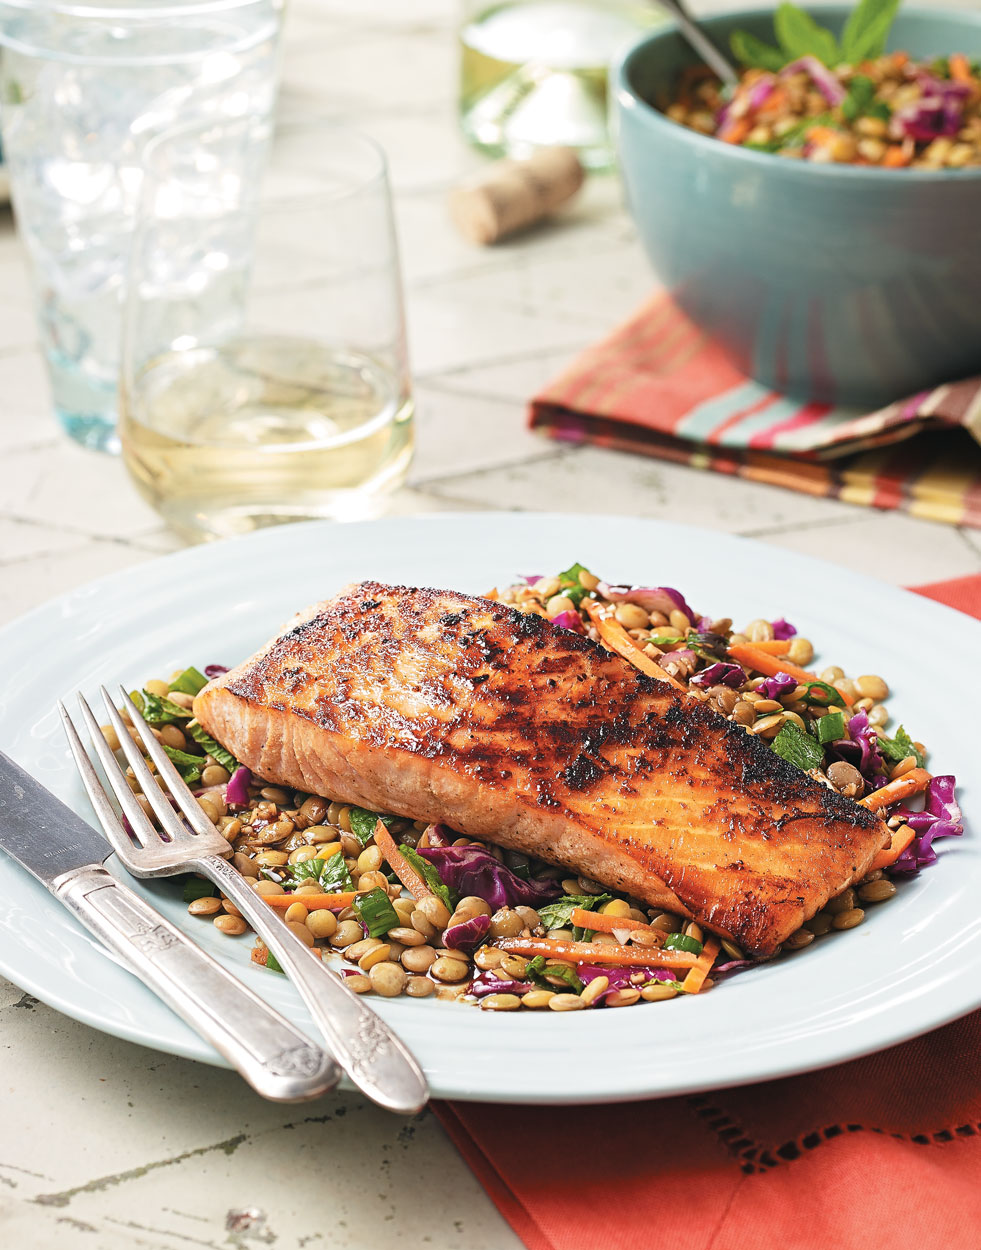 Salmon & Lentil Salad with Balsamic Vinaigrette